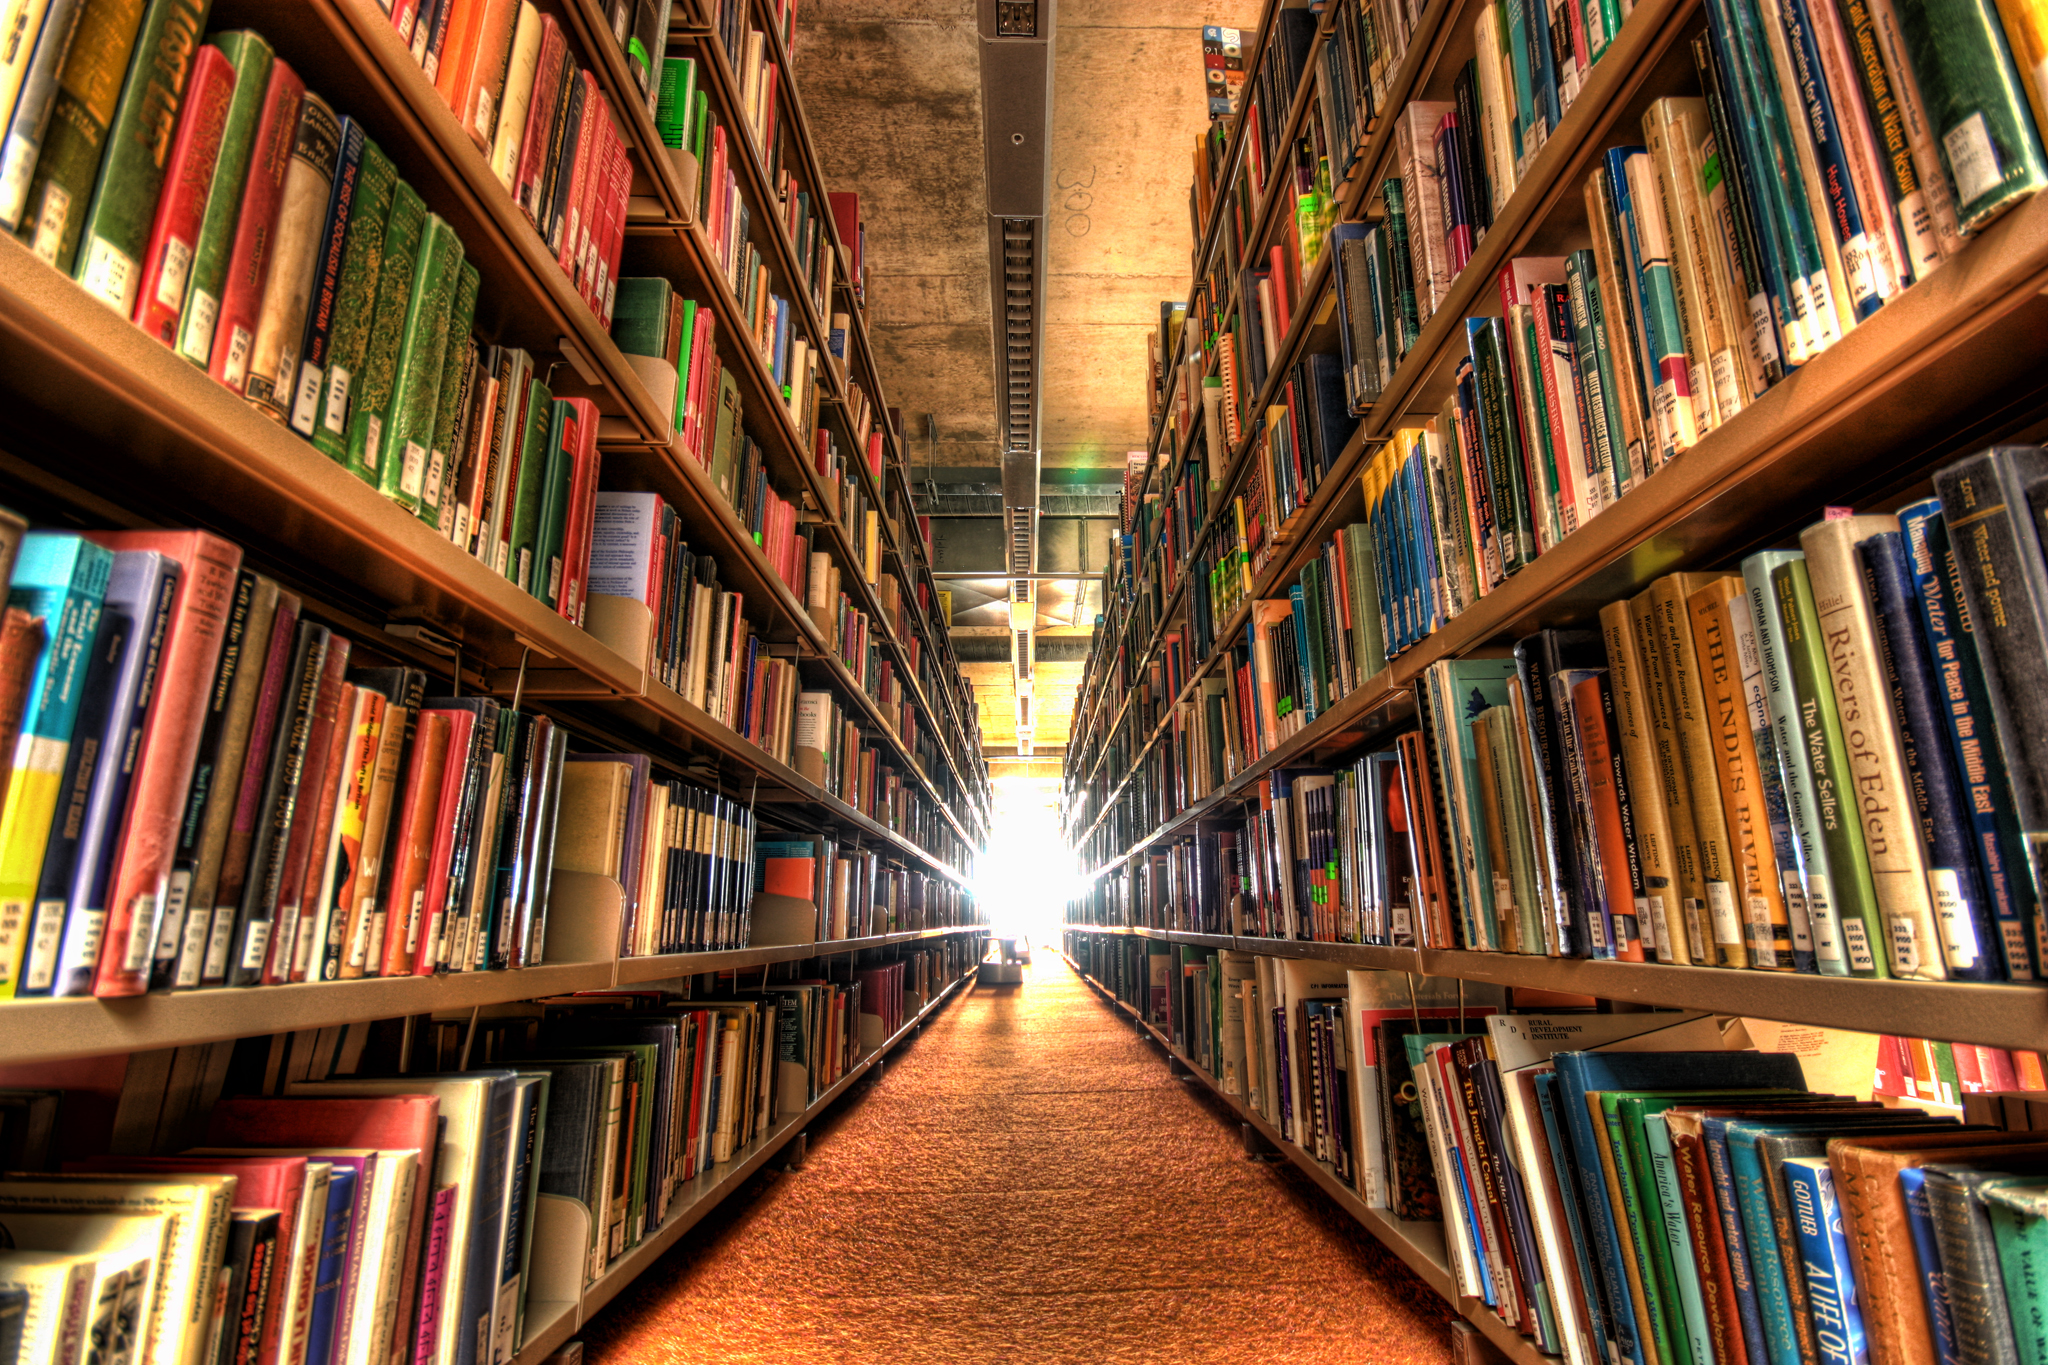 Photograph of a long corridor of bookshelve apparently stretching off endlessly into a white light at the vanishing point